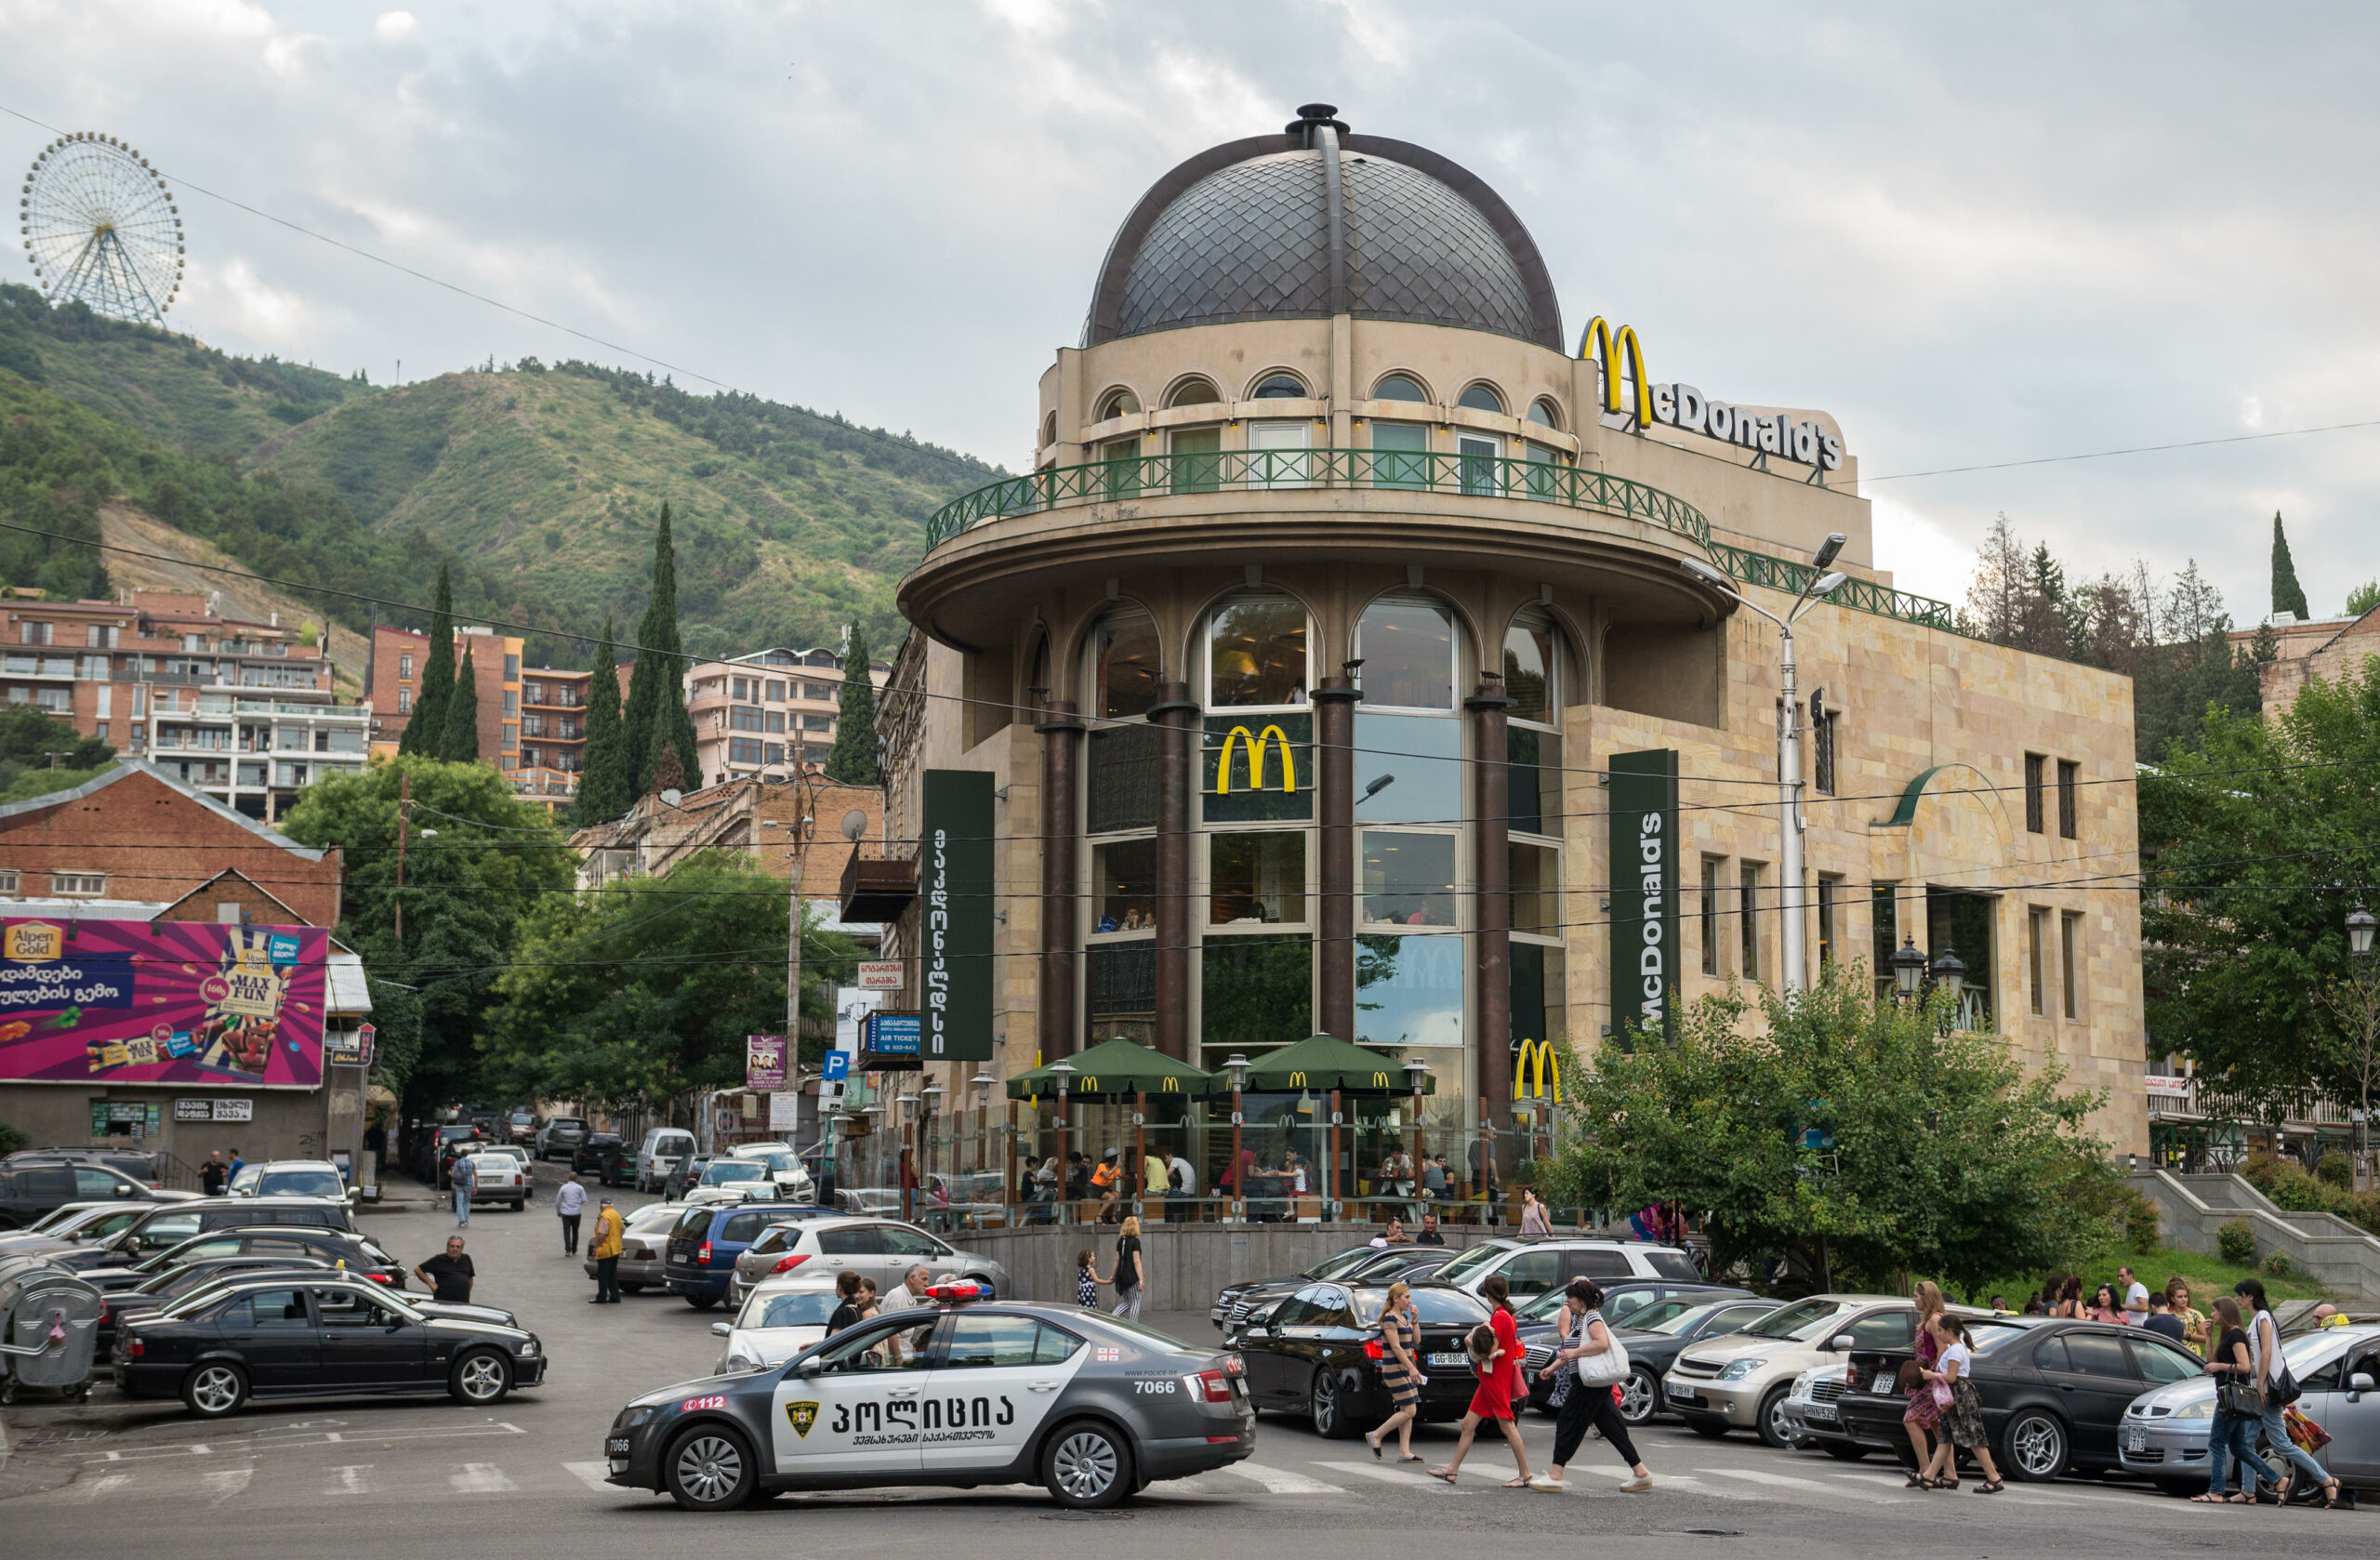 nicest McDonald's in the world